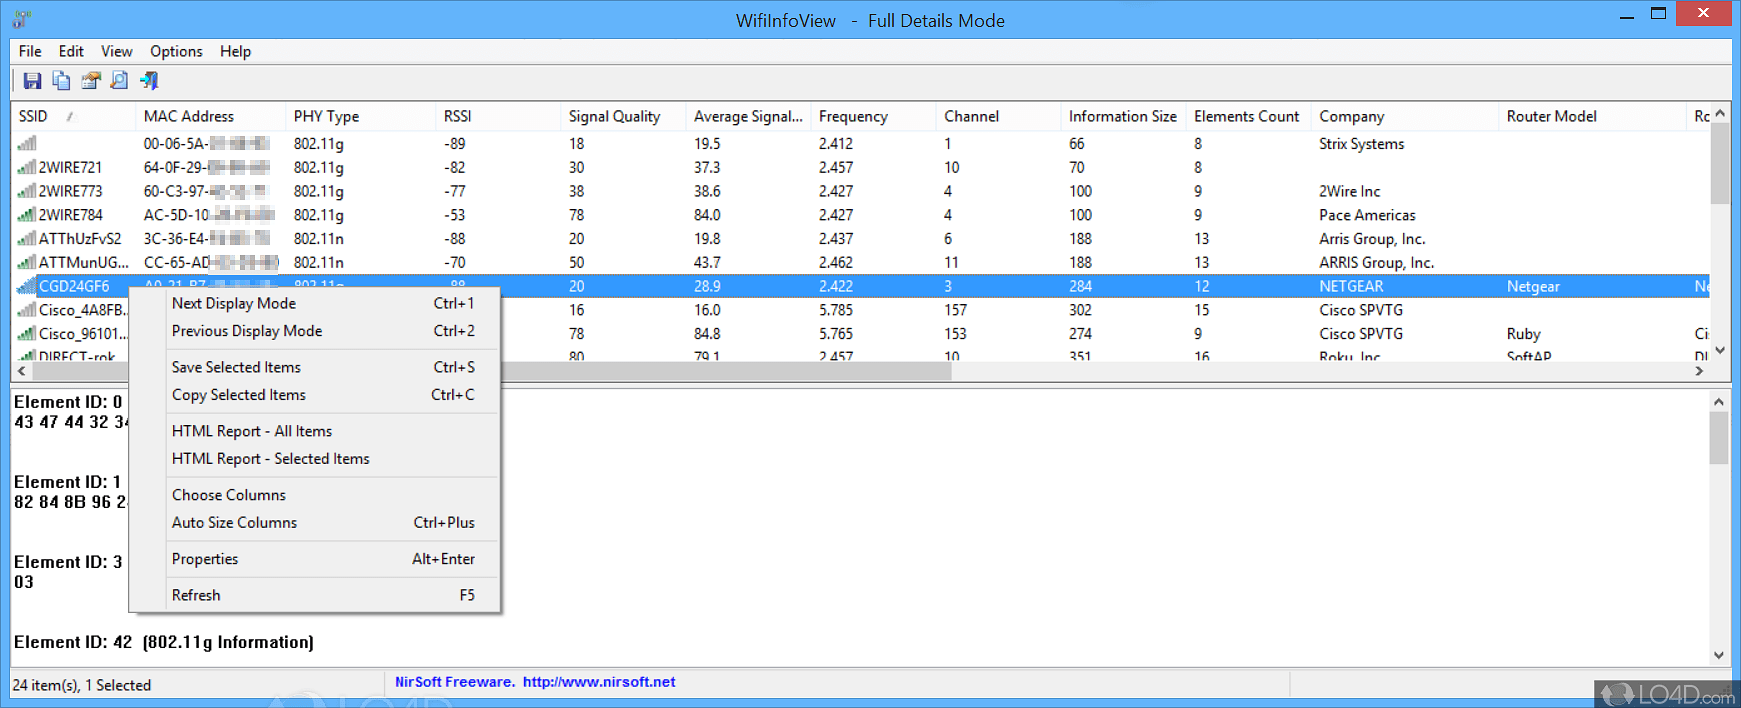 WifiInfoView  Download